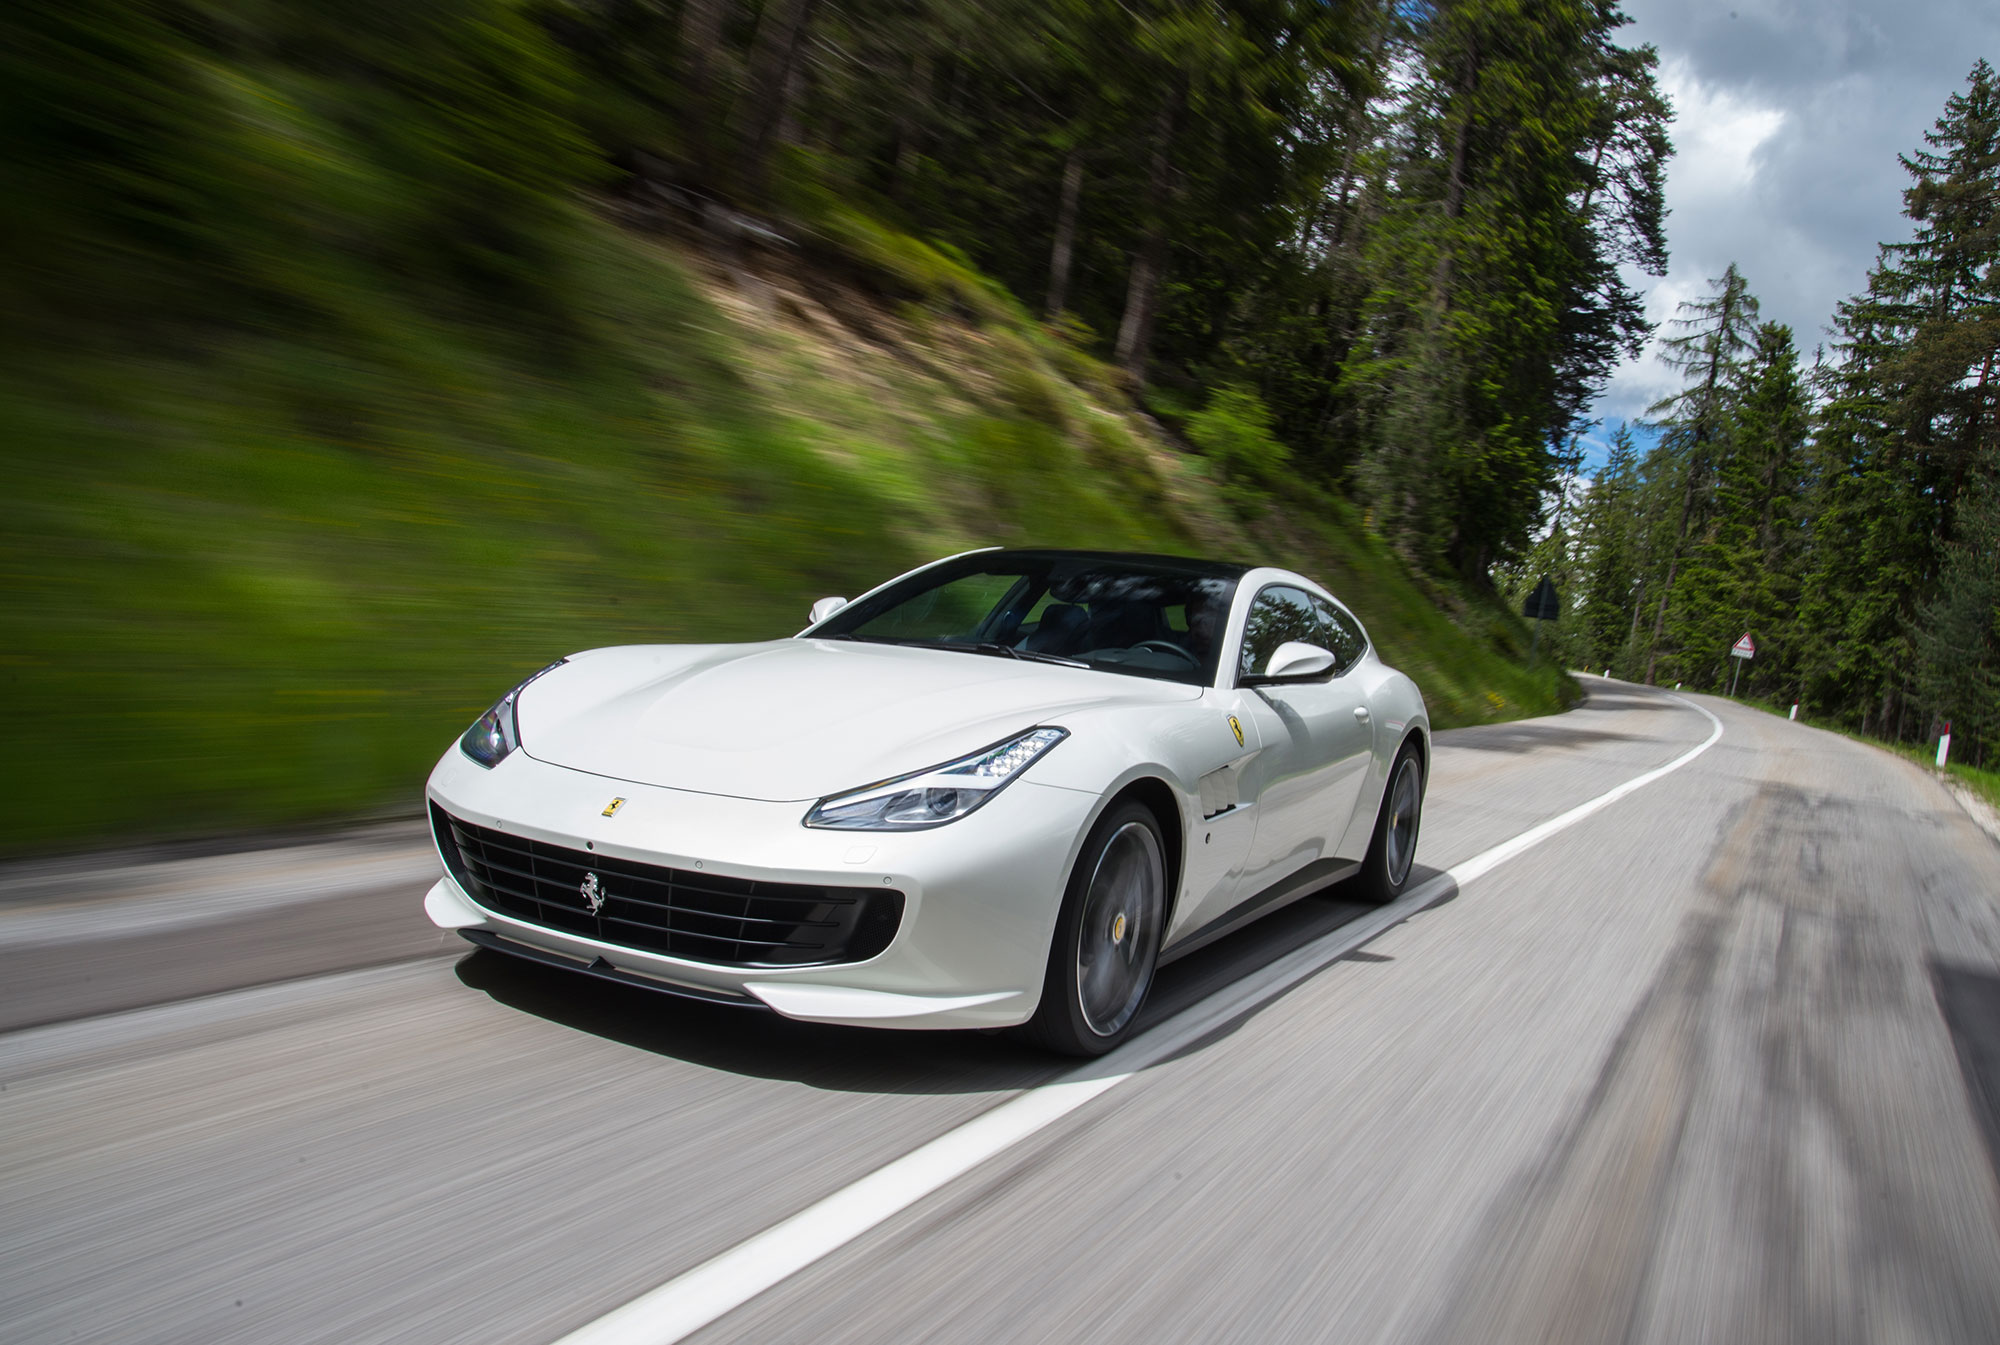 Ferrari Gtc4lusso Review The Ultimate In Practicality And Performance Evo